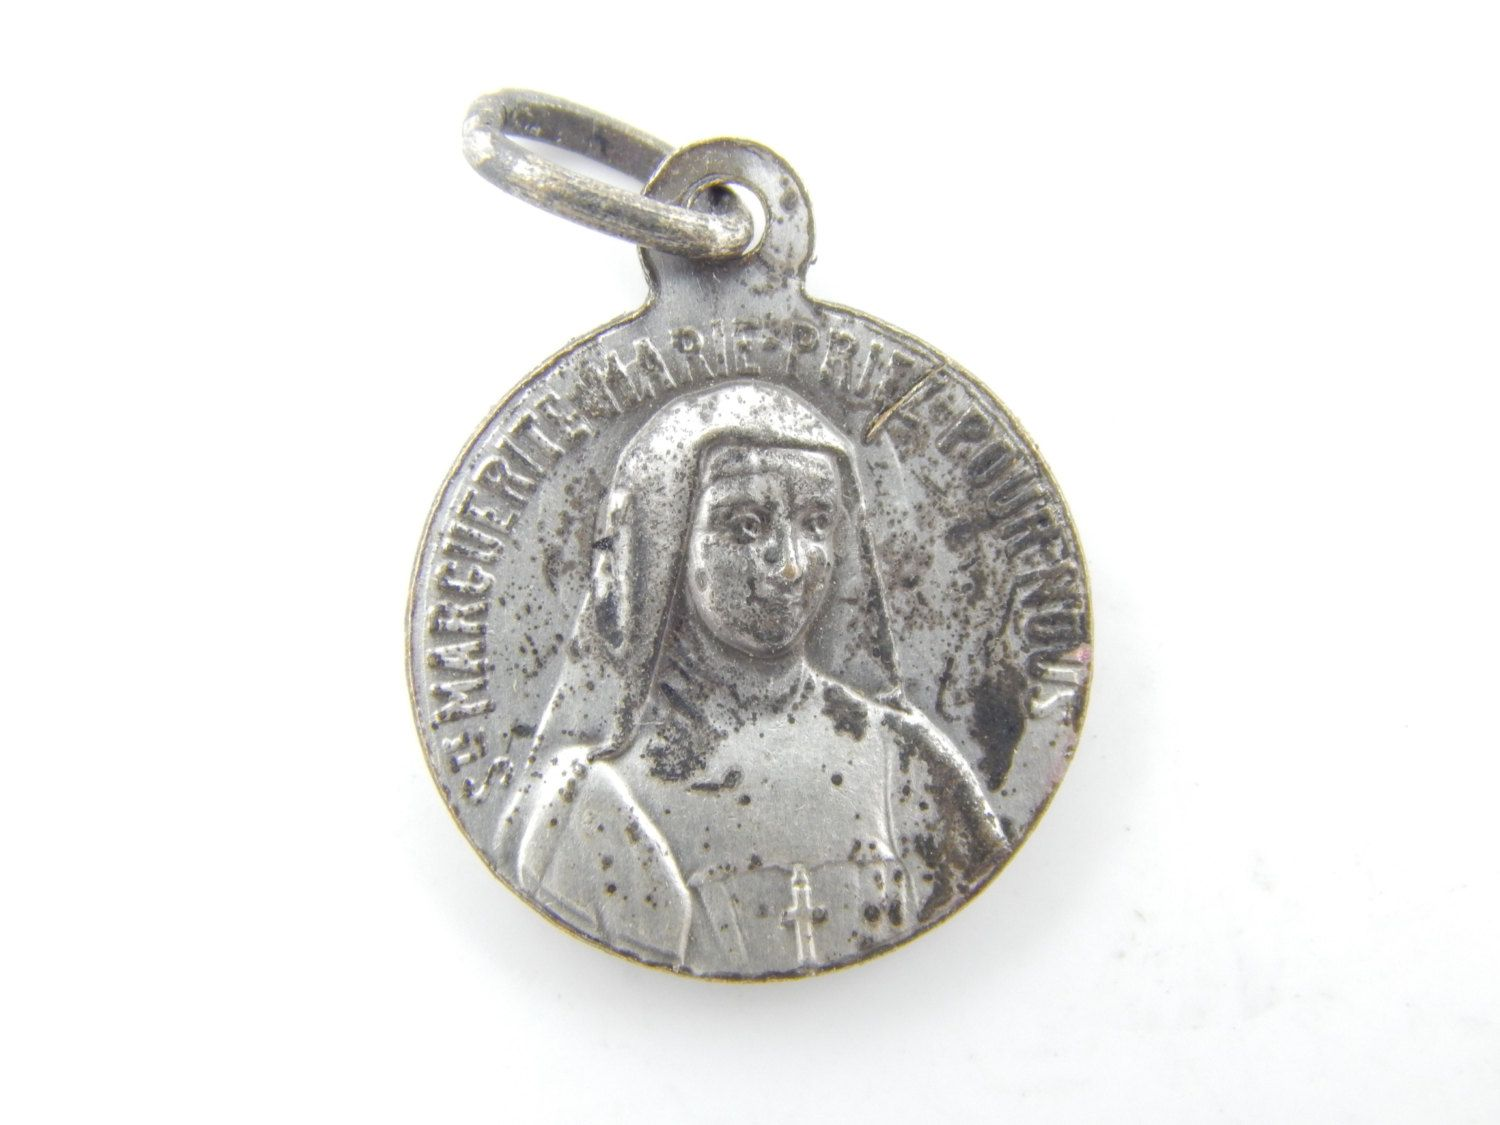 catholic the is medal reference what meaning com of medallion saint world view christopher